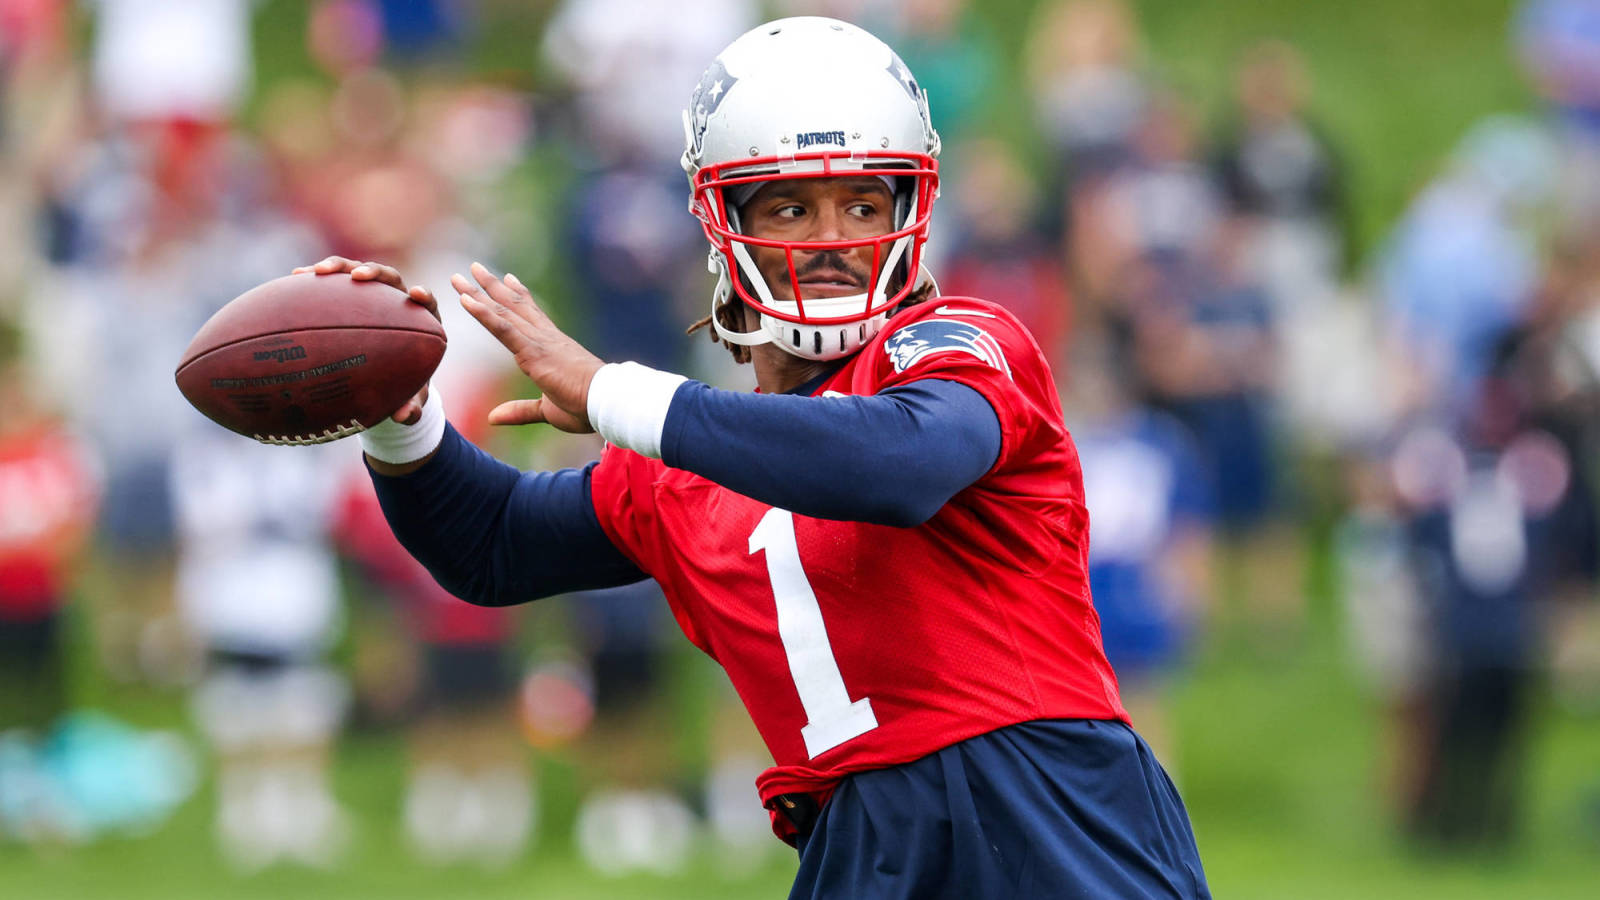 According to reports, the Patriots are dissatisfied with Cam Newton's handling of the COVID process.